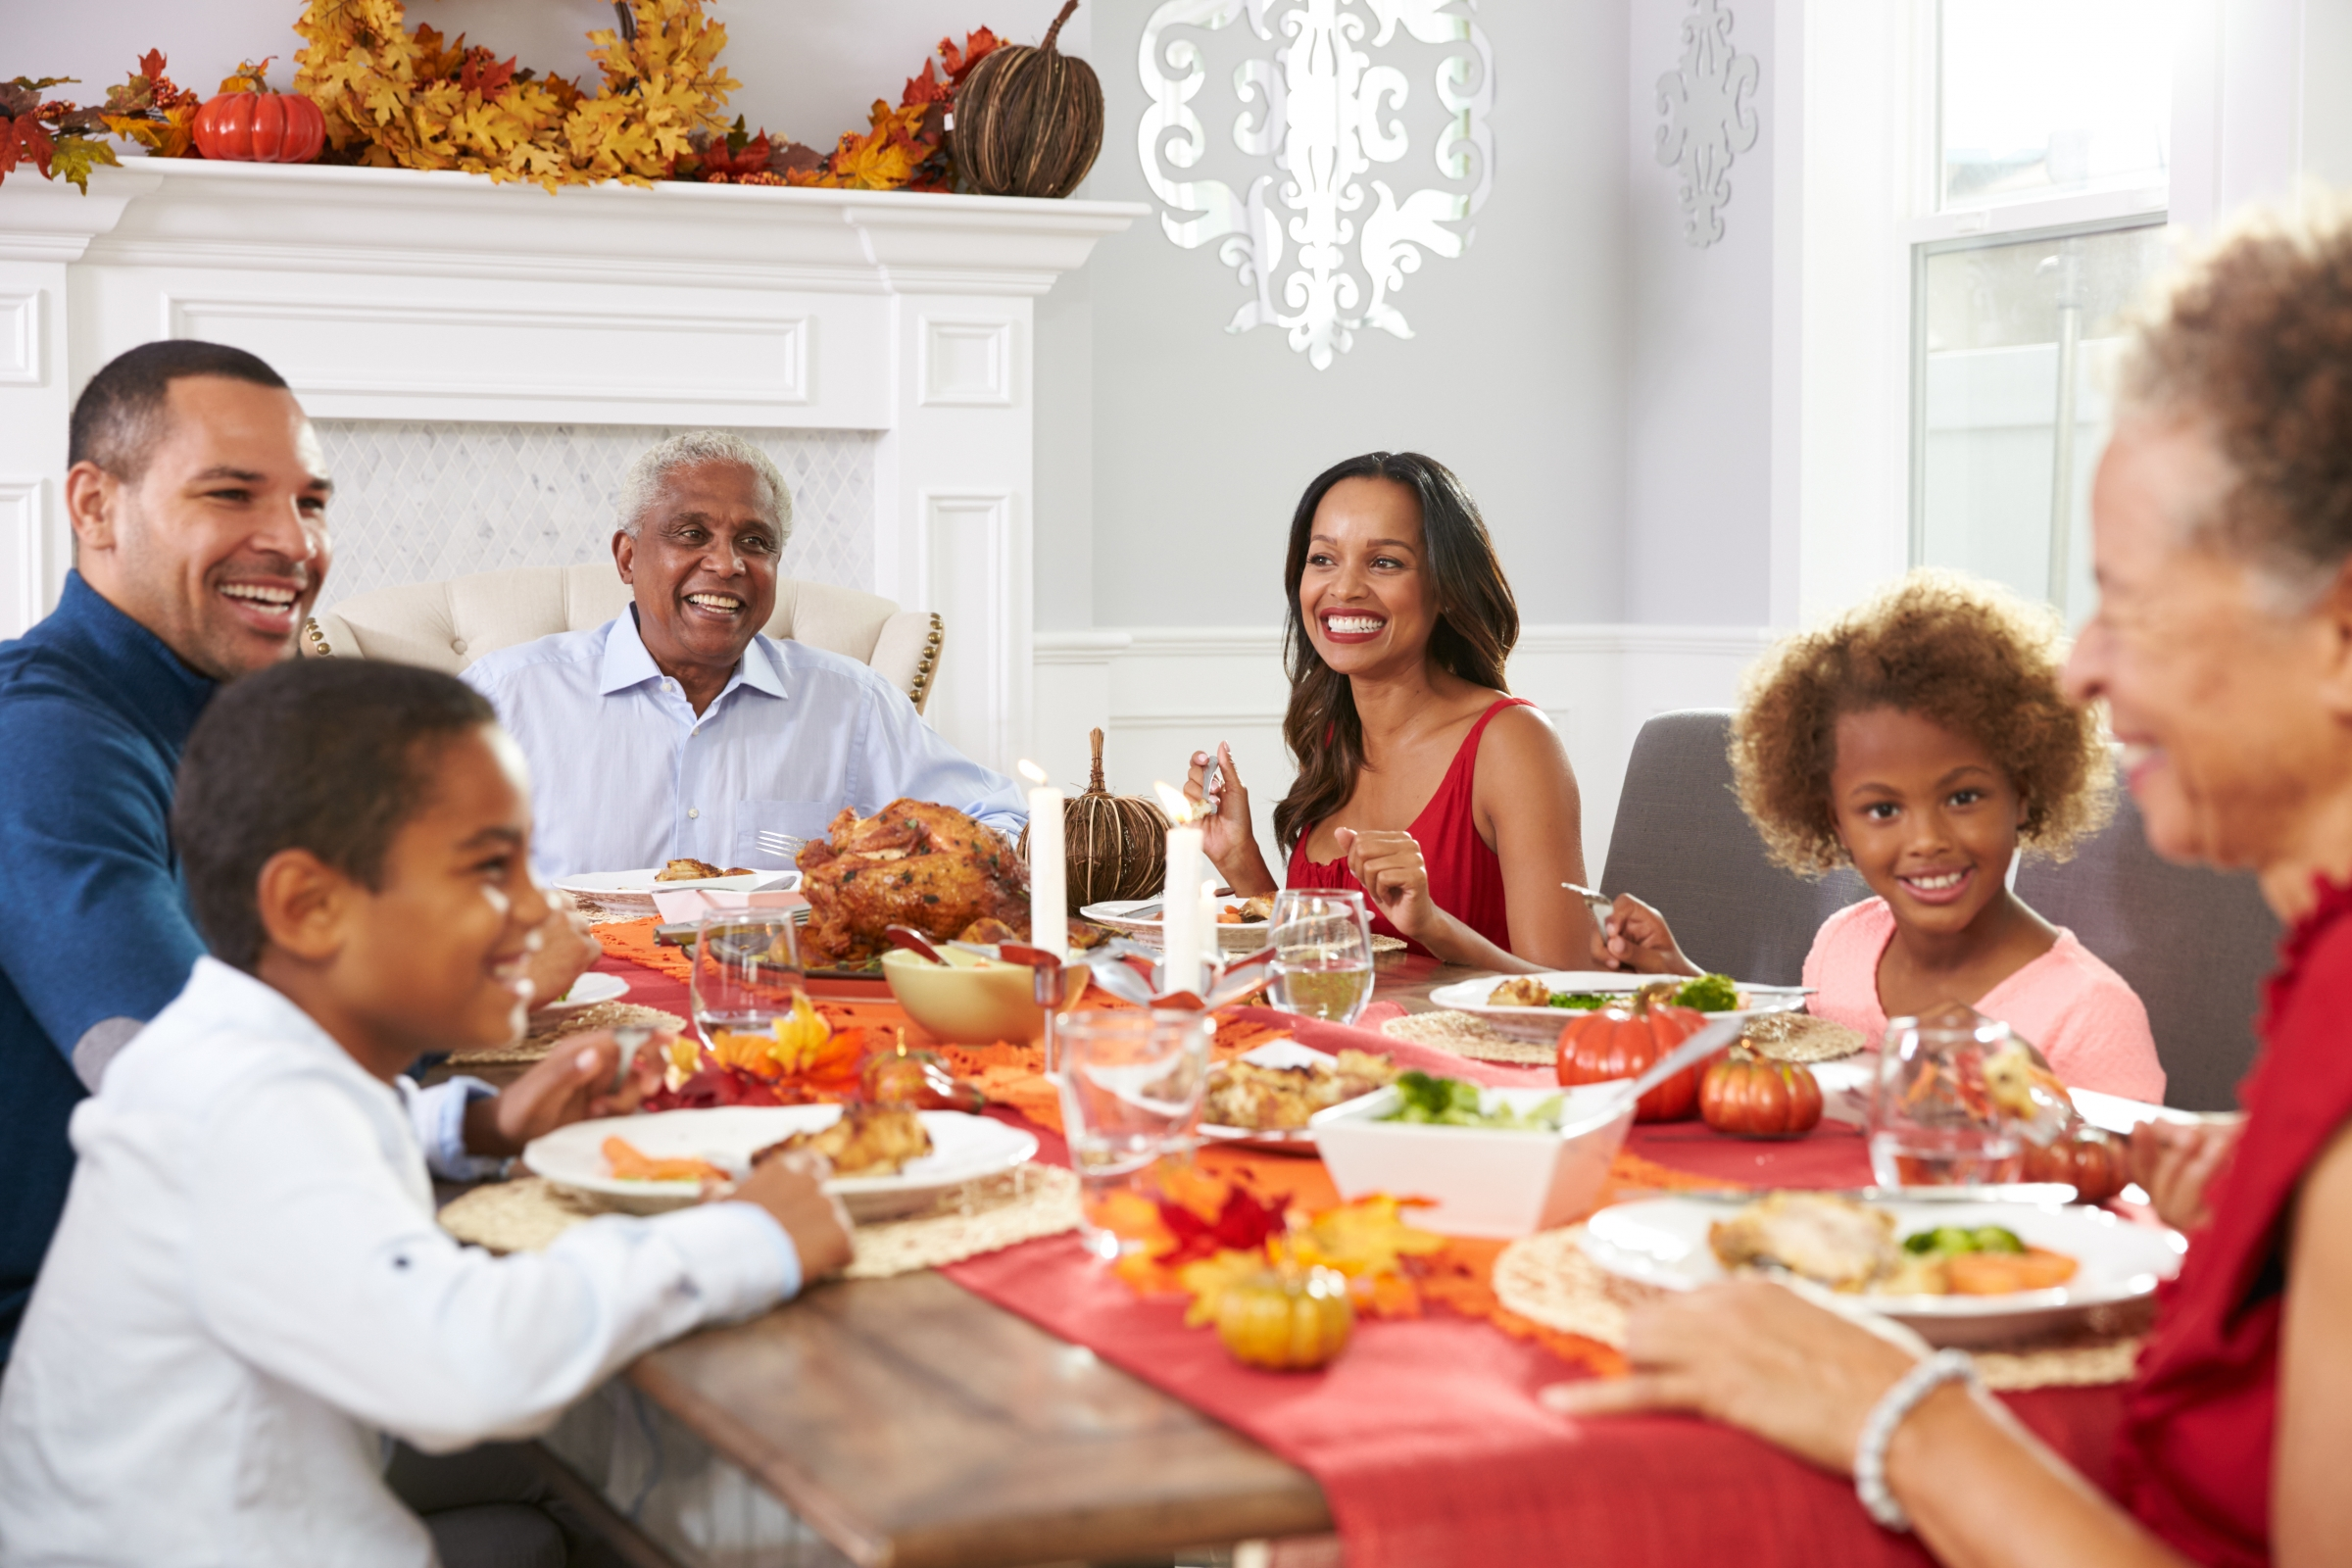 Family Celebrating the Holidays Over a Meal